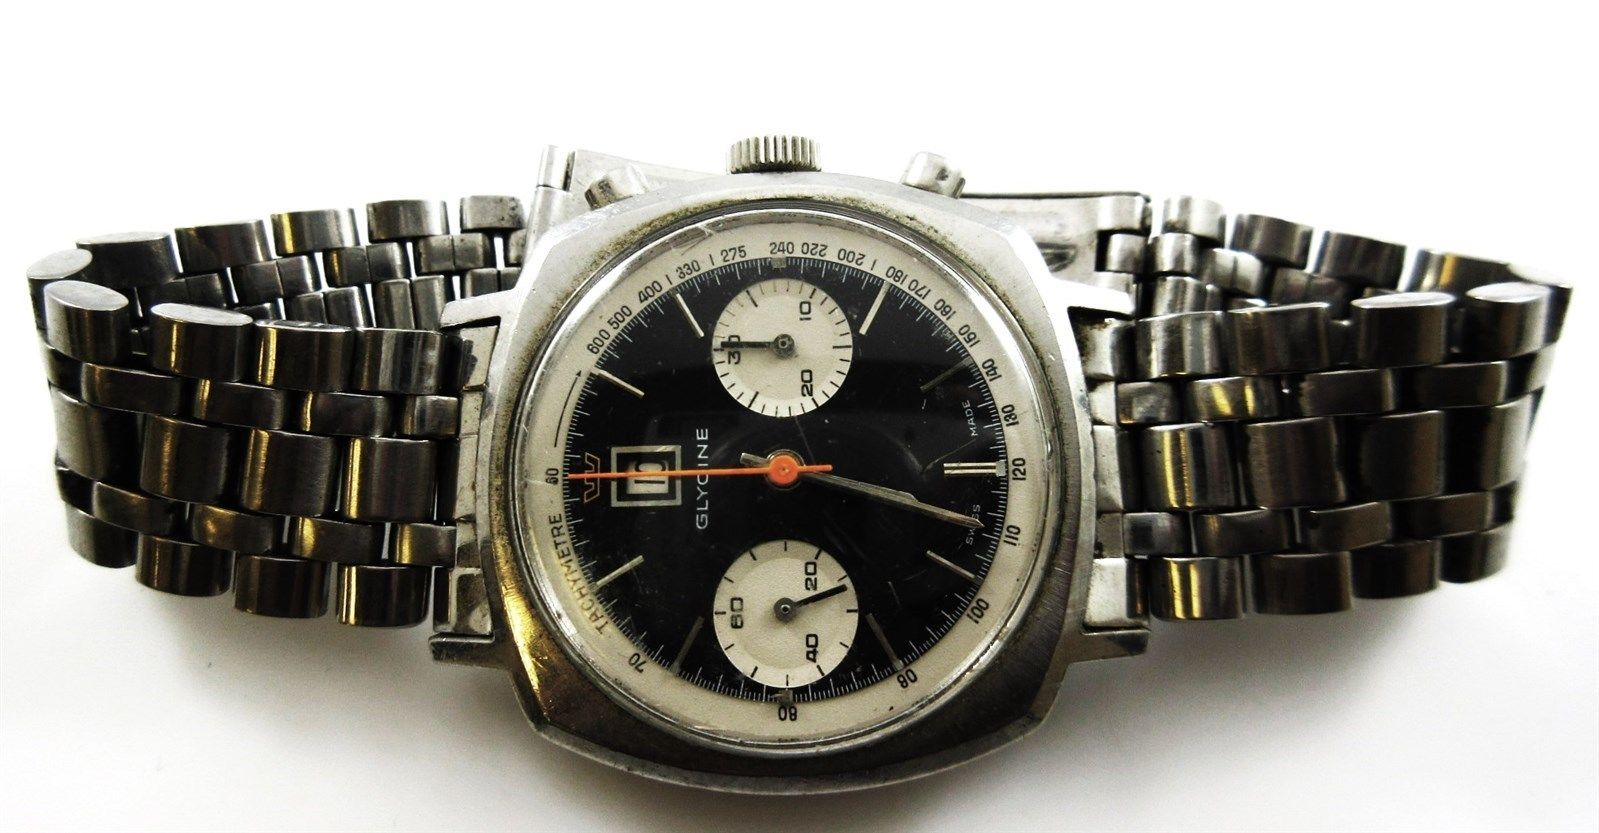 Dirty, grimey, Glycine Camaro, ready for a second life. Photo from eBay listing, click through to bid.